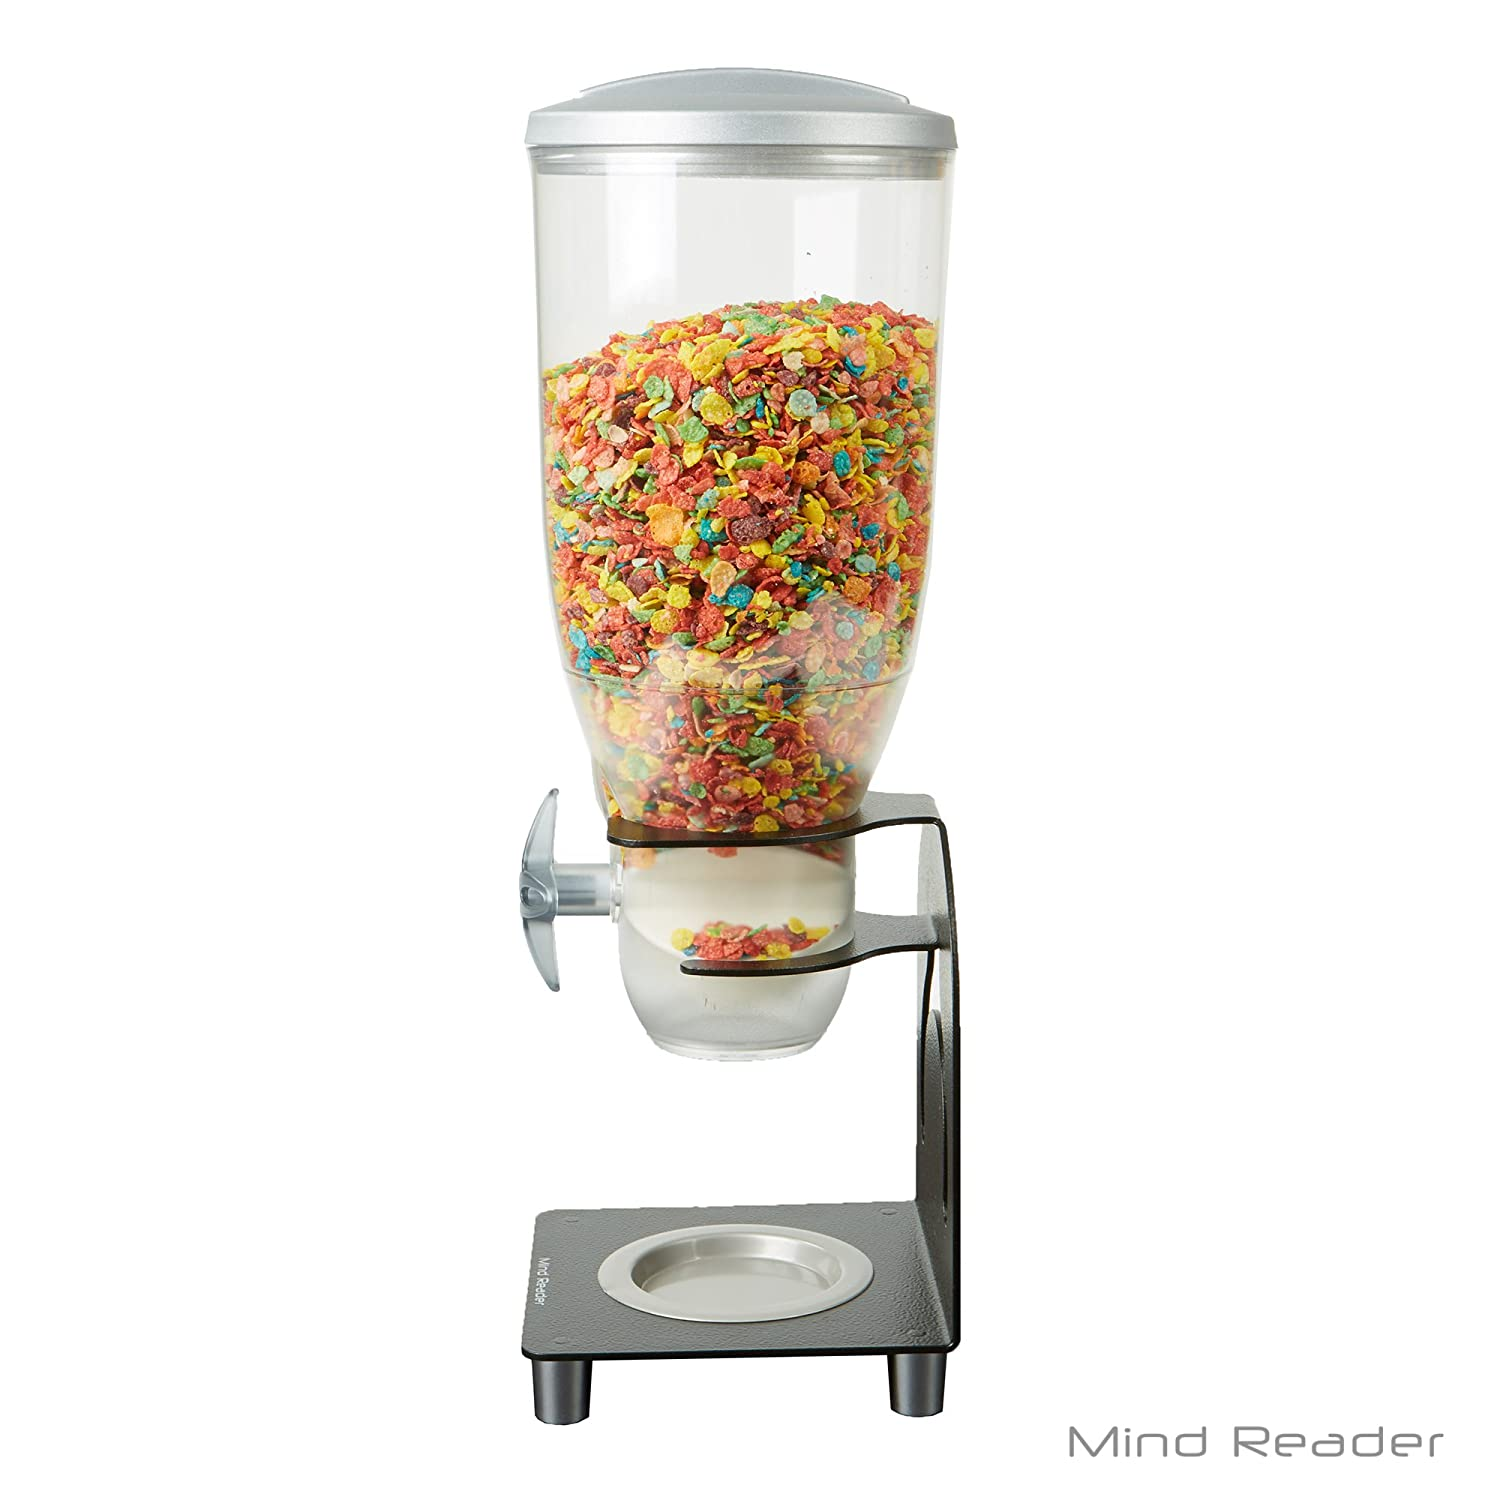 Mind Reader kell200-blk Metal dispensador de cereales, color negro: Amazon.es: Hogar